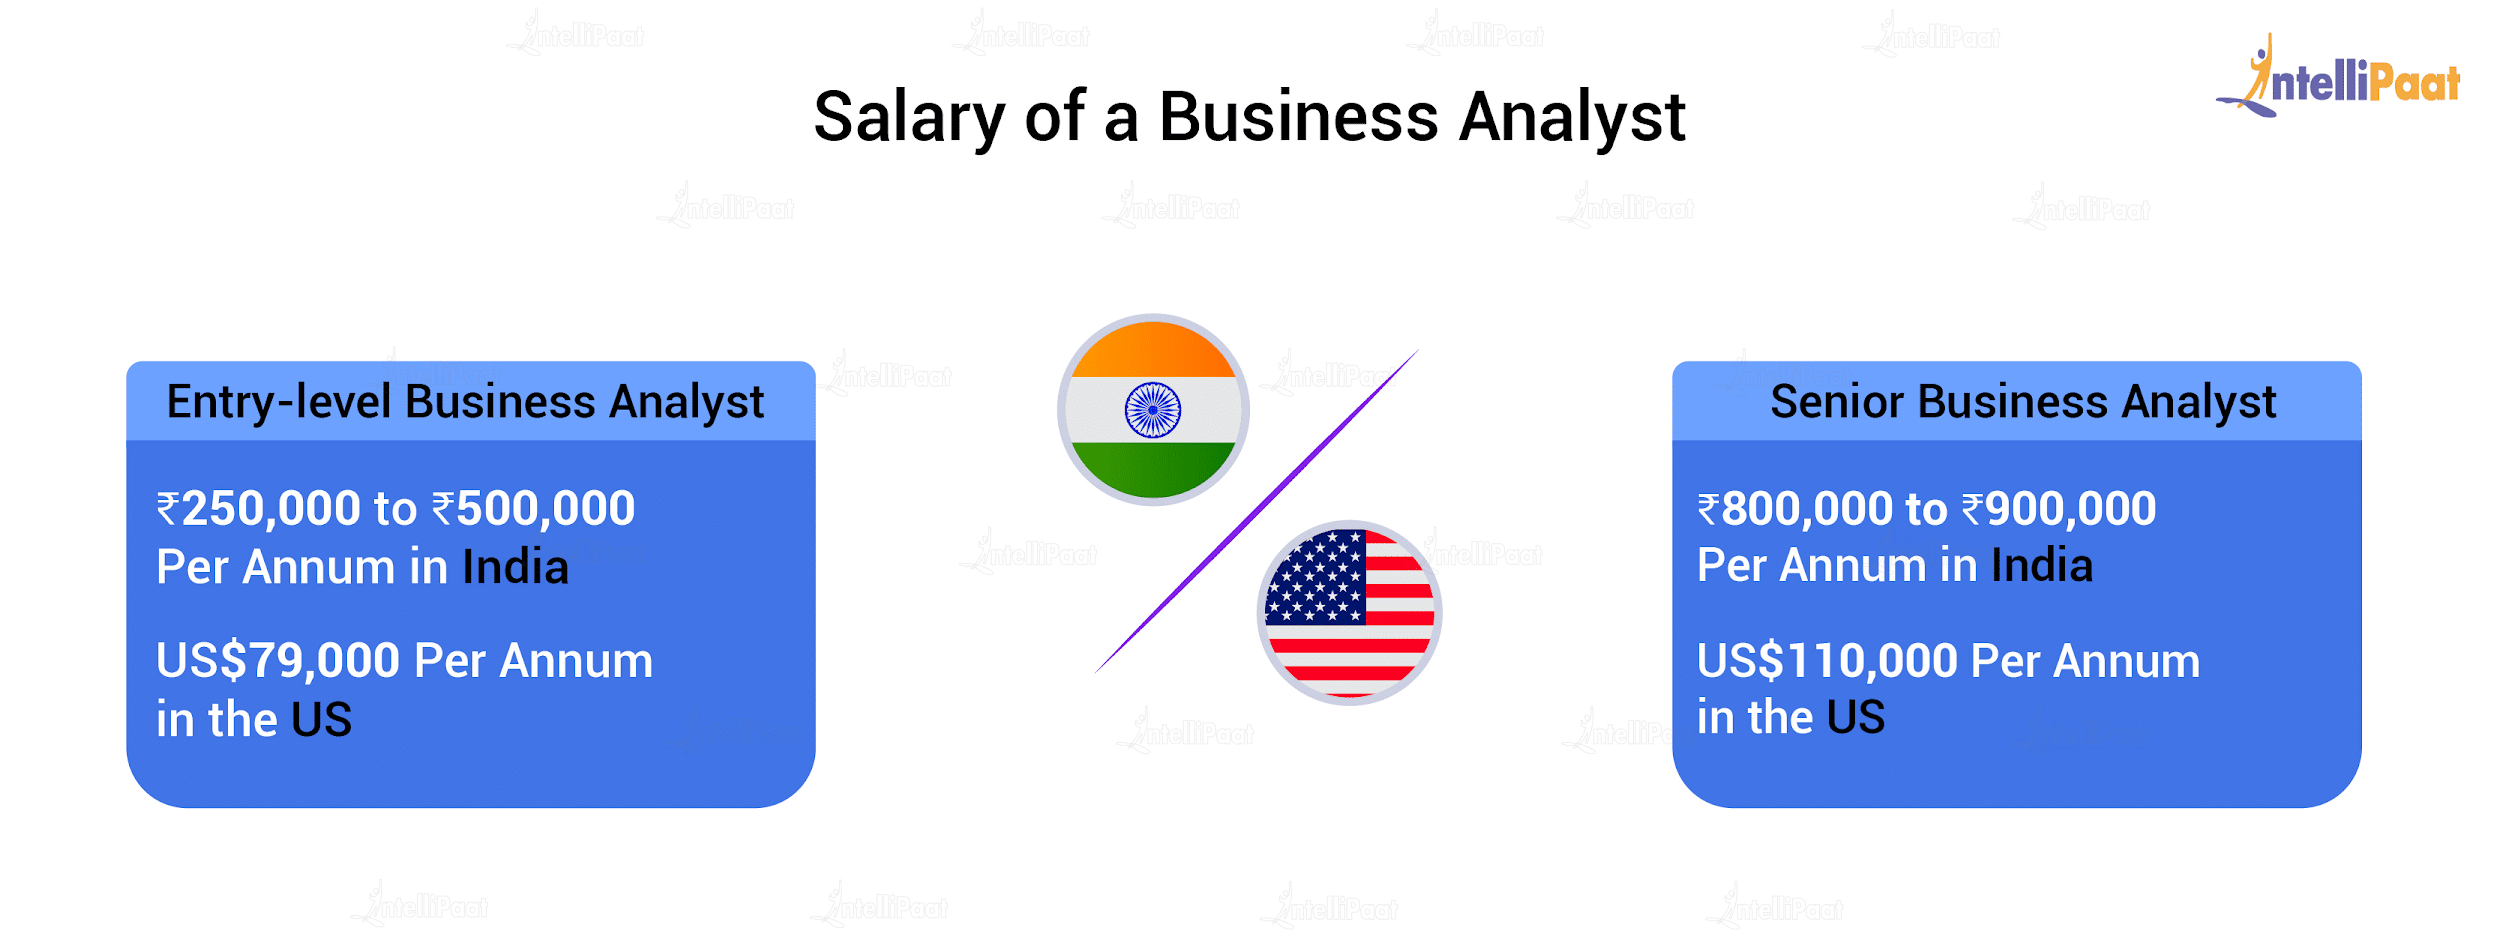 Salaries of Business Analysts in India and in the US